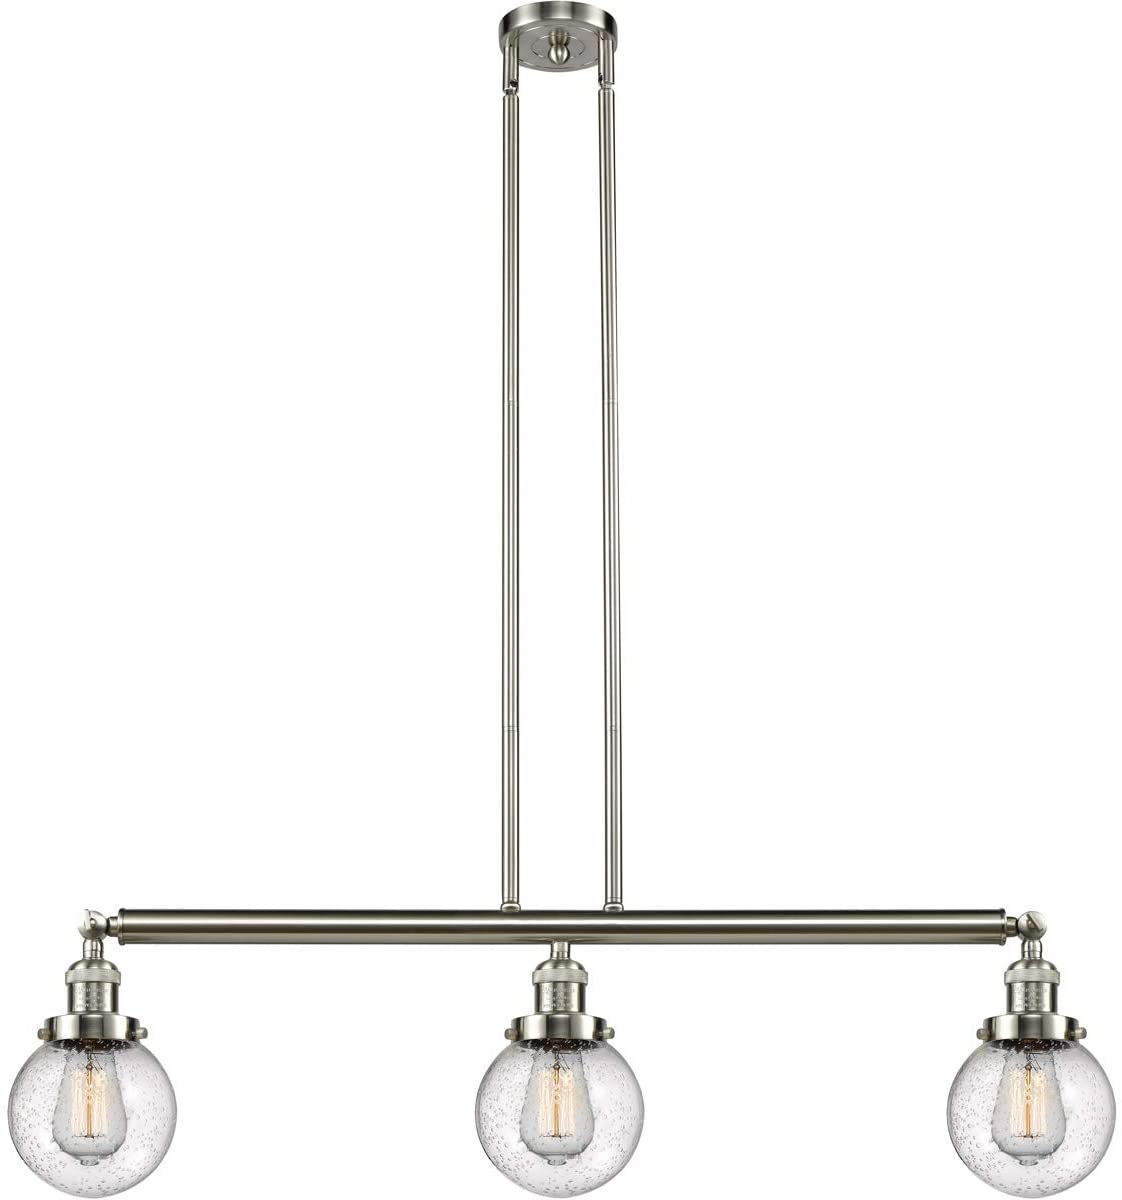 Innovations 213-SN-S-G204-6-LED 3 Vintage Dimmable LED Adjustable Island Light, Brushed Satin Nickel